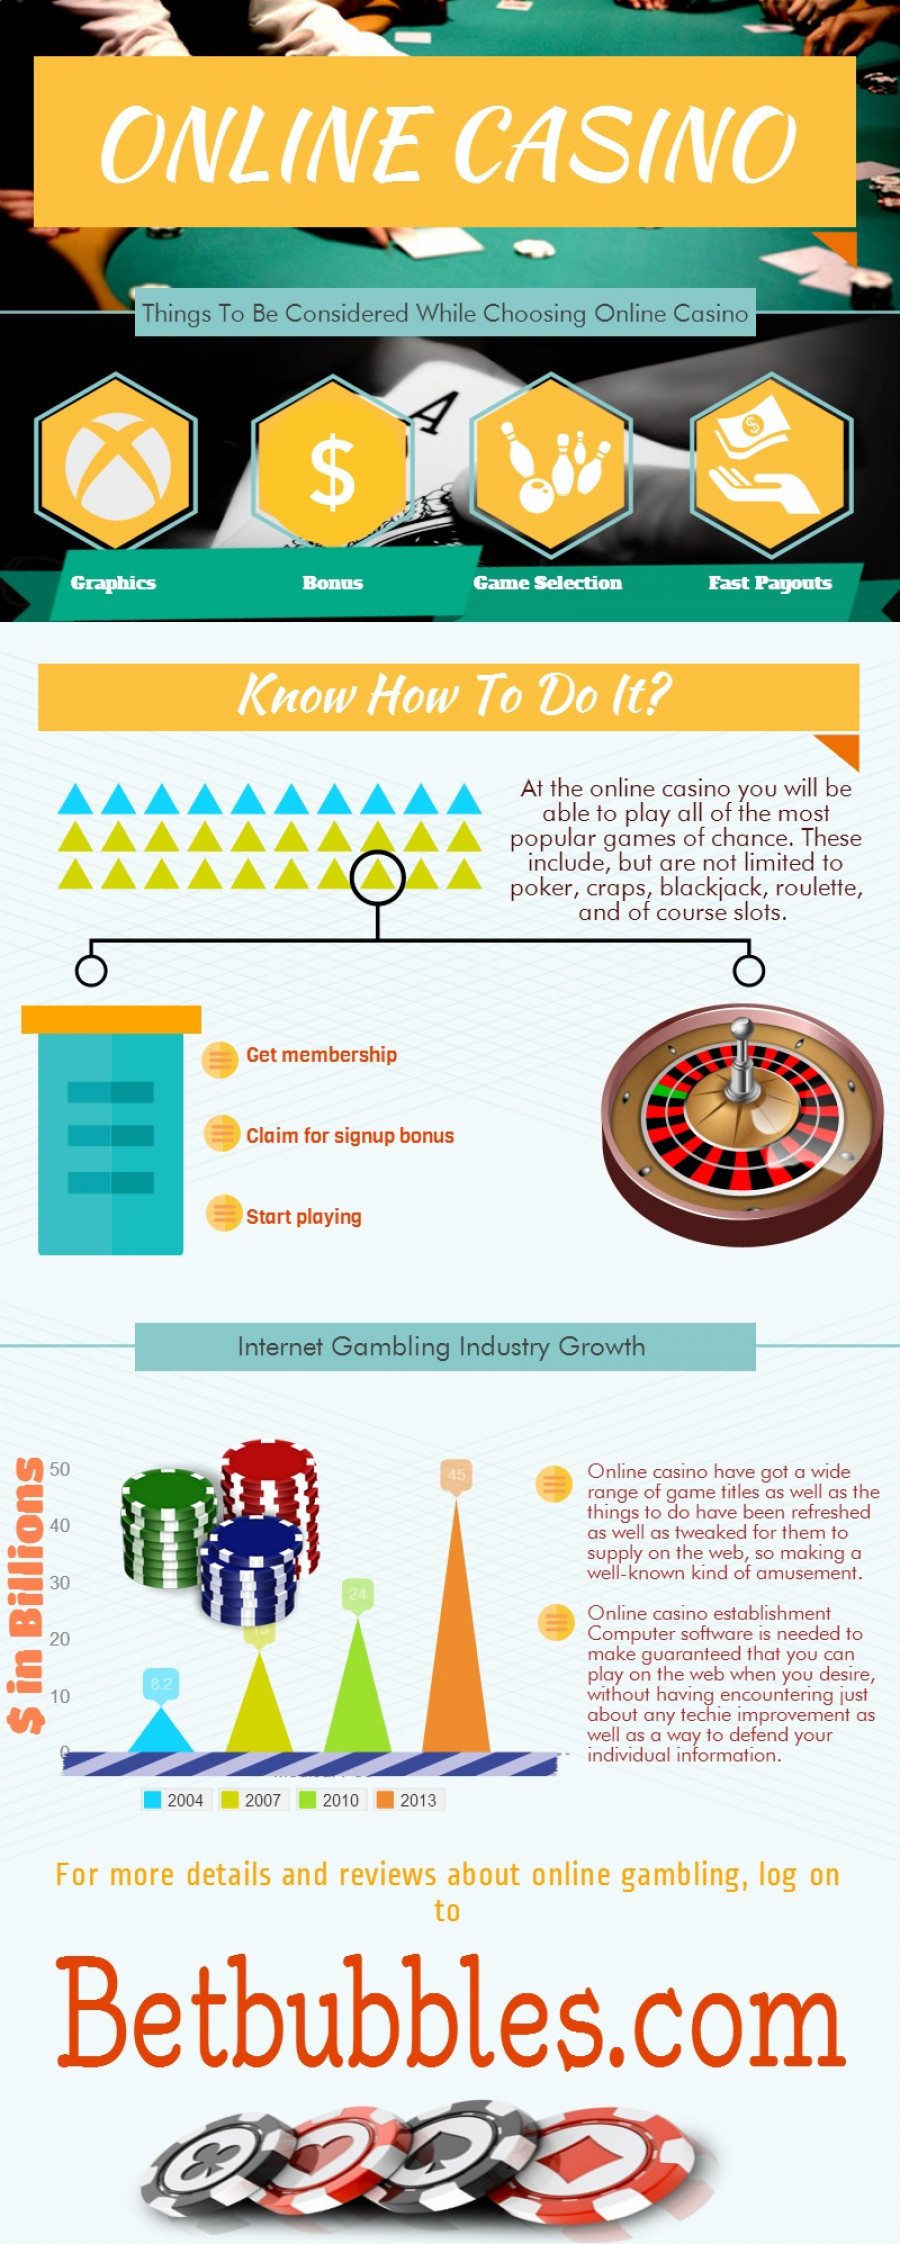 121622? w=900 - 3 Interesting Facts about Online Casinos